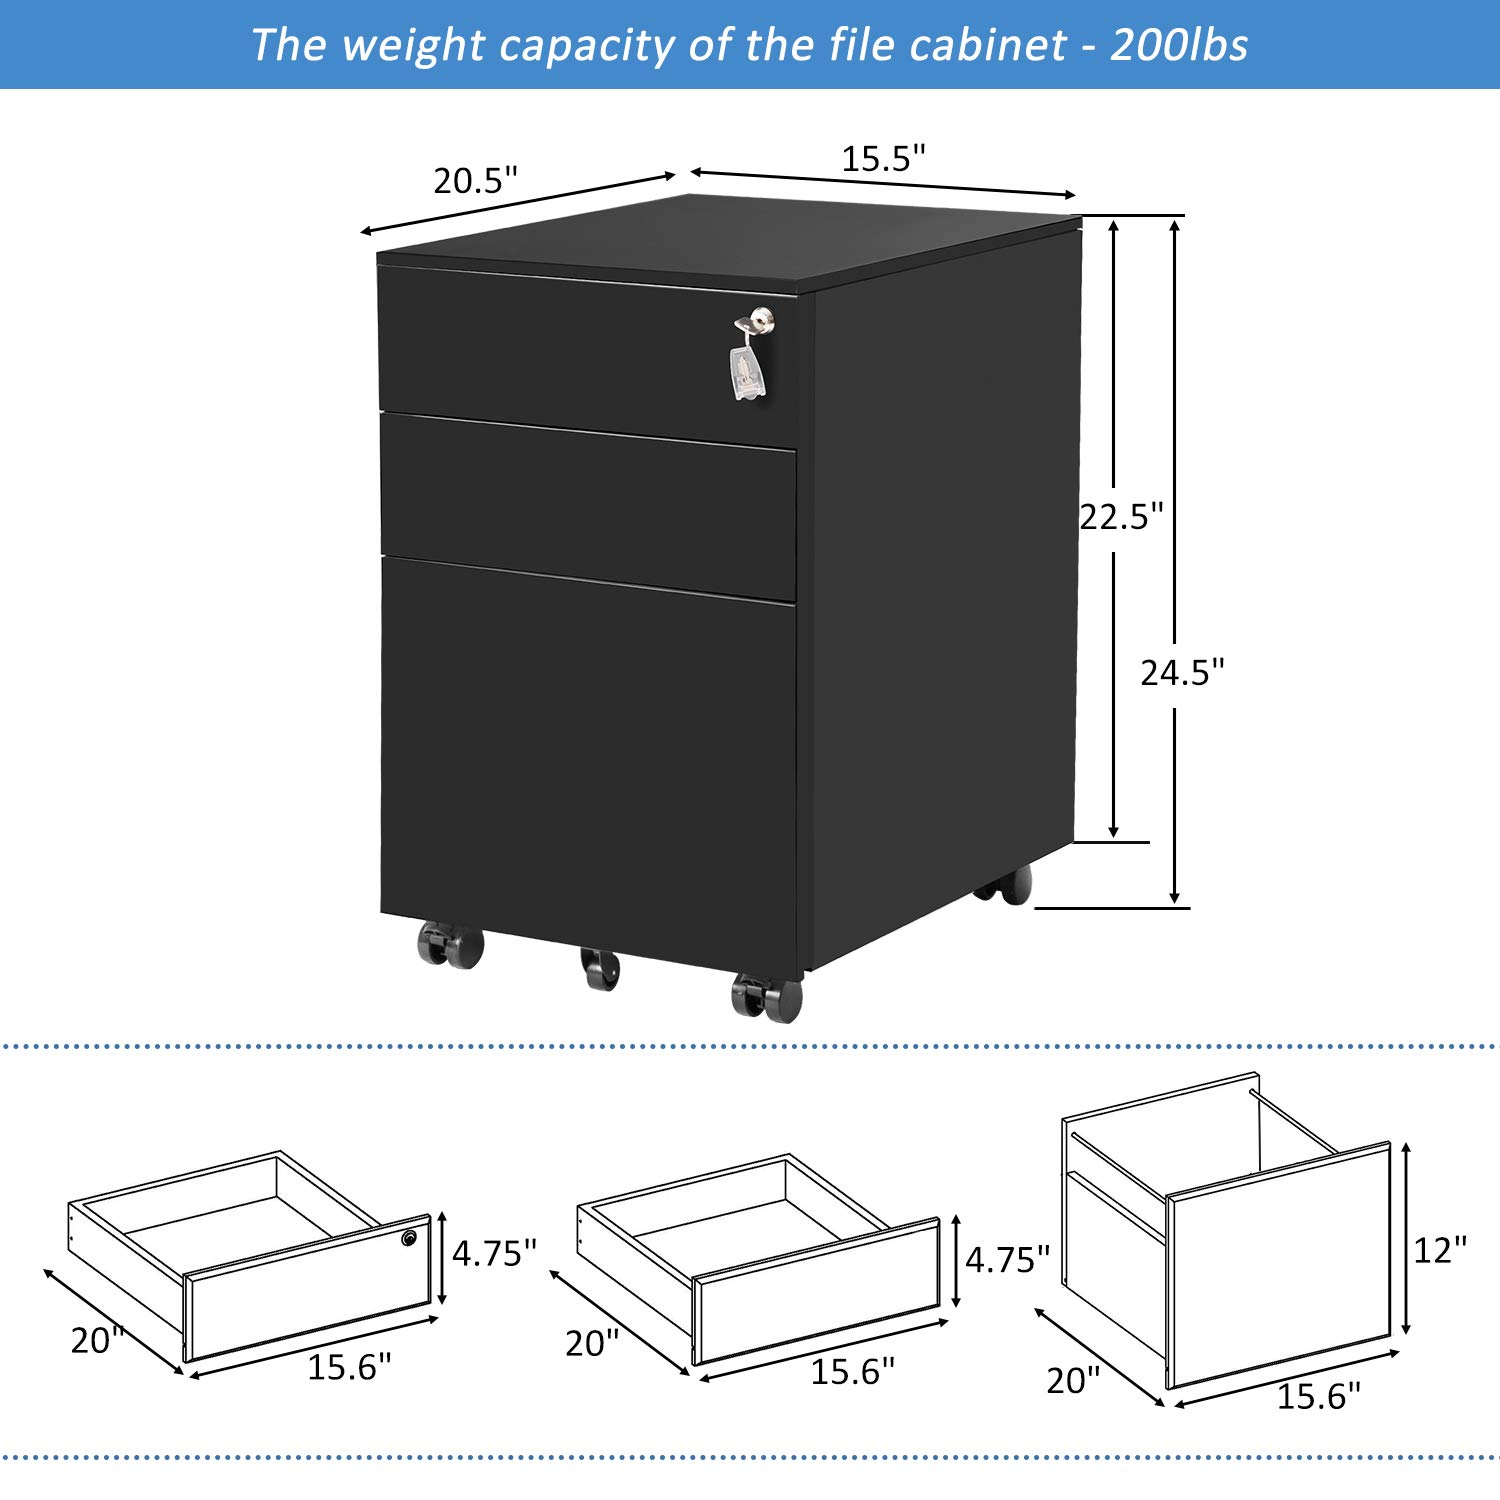 ModernLuxe File Cabinet 3 Drawer Metal Mobile File Cabinet with Lock Fully-Assembled Except Casters (Black) by ModernLuxe (Image #2)